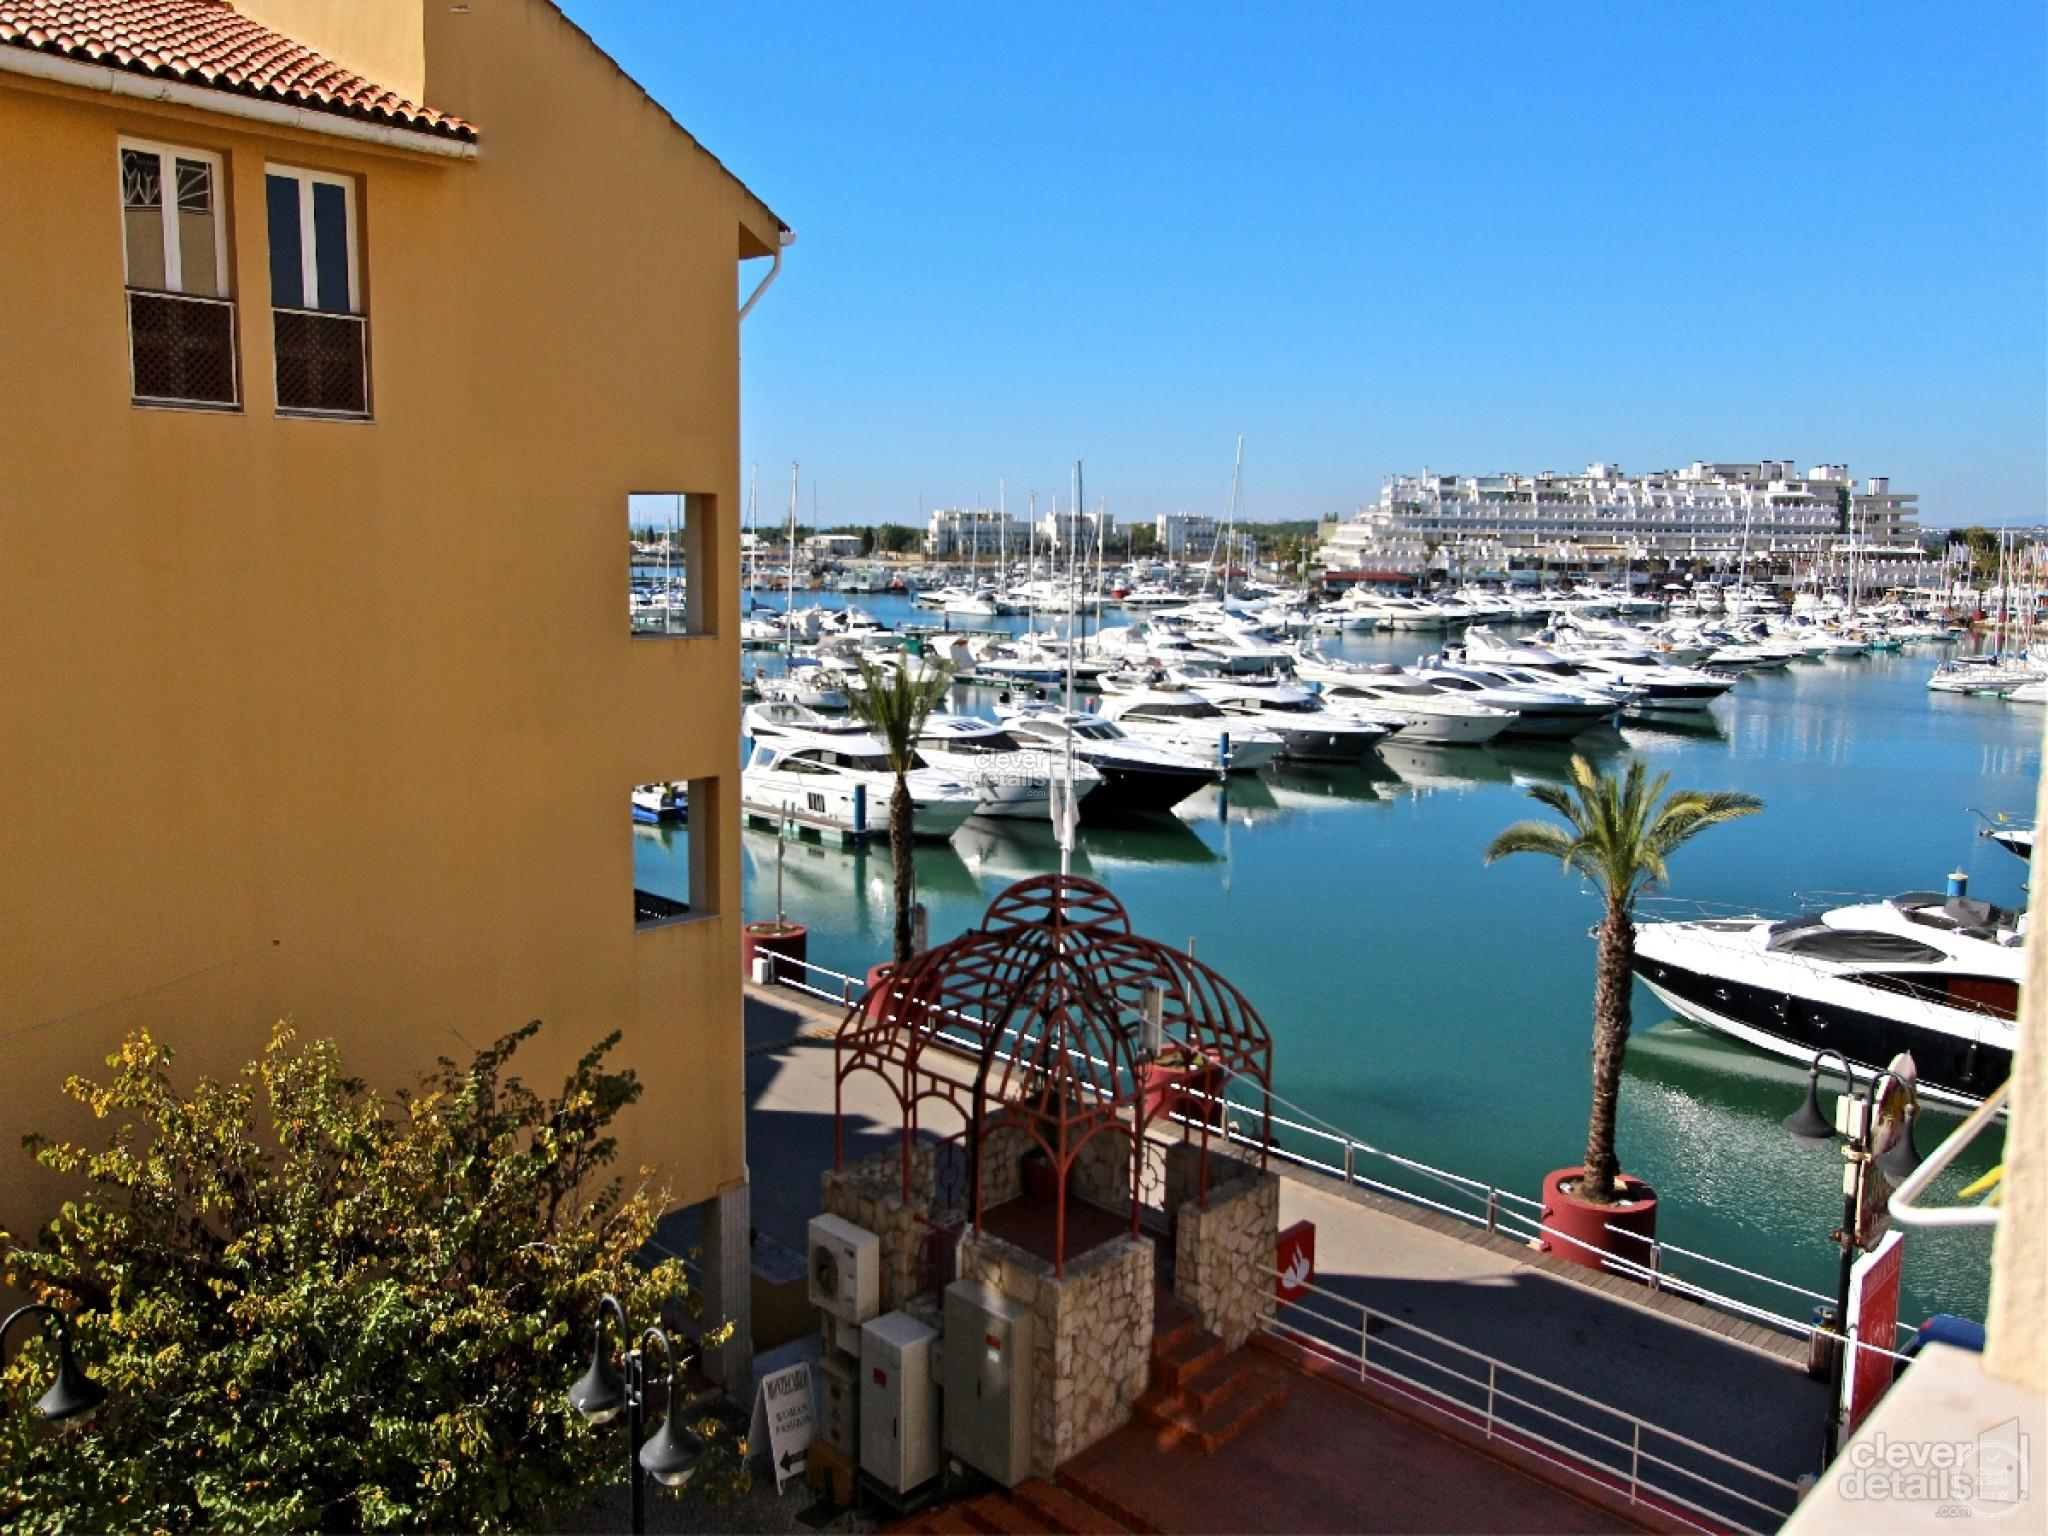 Marina Plaza Vilamoura Rentals: Charming galleried one bedroom apartment in the centre of Vilamoura with views over the marina.